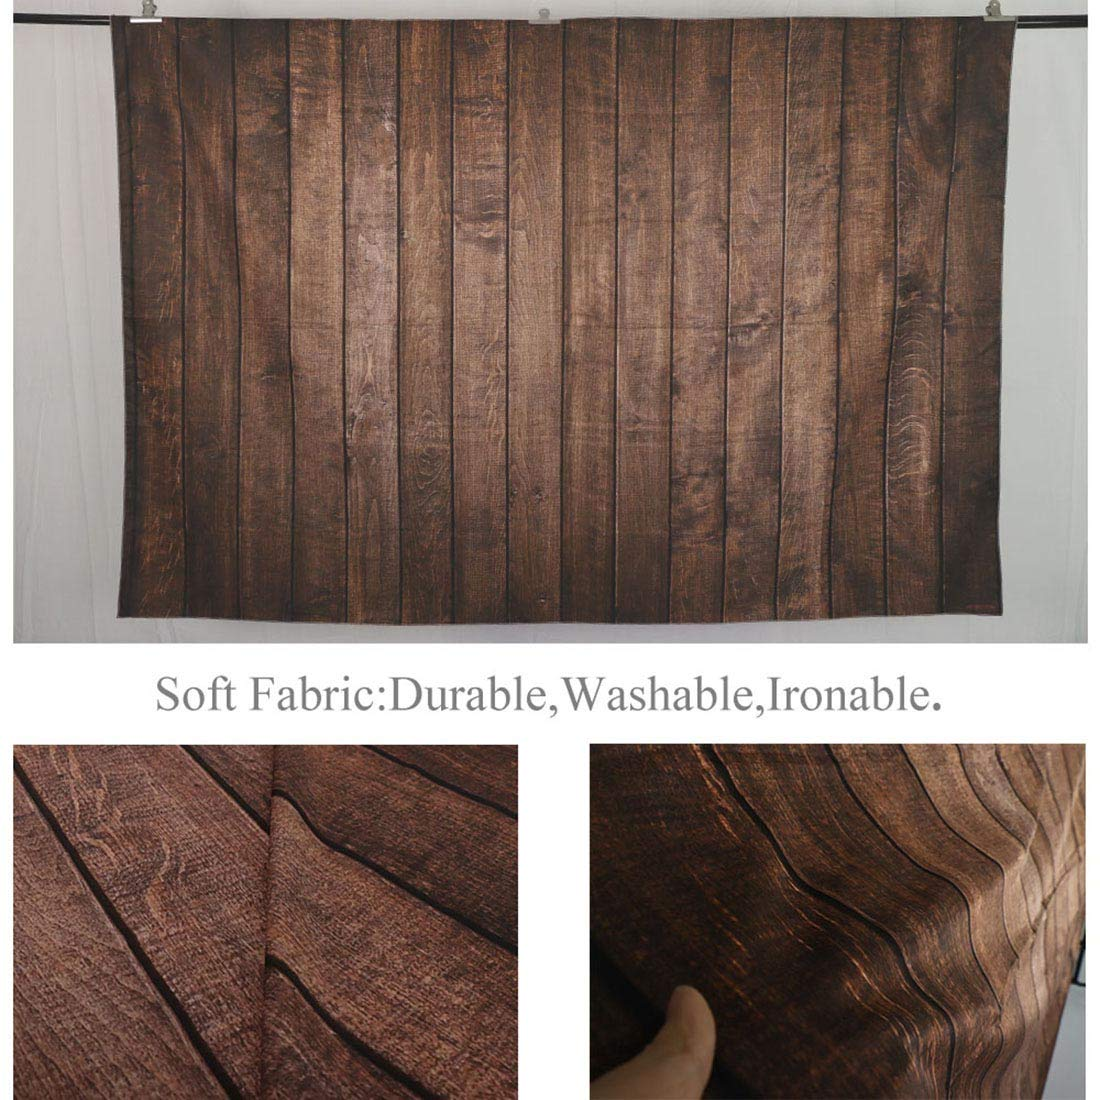 Allenjoy 7x5ft Fabric Vintage Brown Wood Backdrops for Newborn Photography Wrinkle Free Rustic Russet Grunge Wooden Floor Planks Wall Baby Portrait Still Life Product Photographer Photo Studio Props by Allenjoy (Image #4)